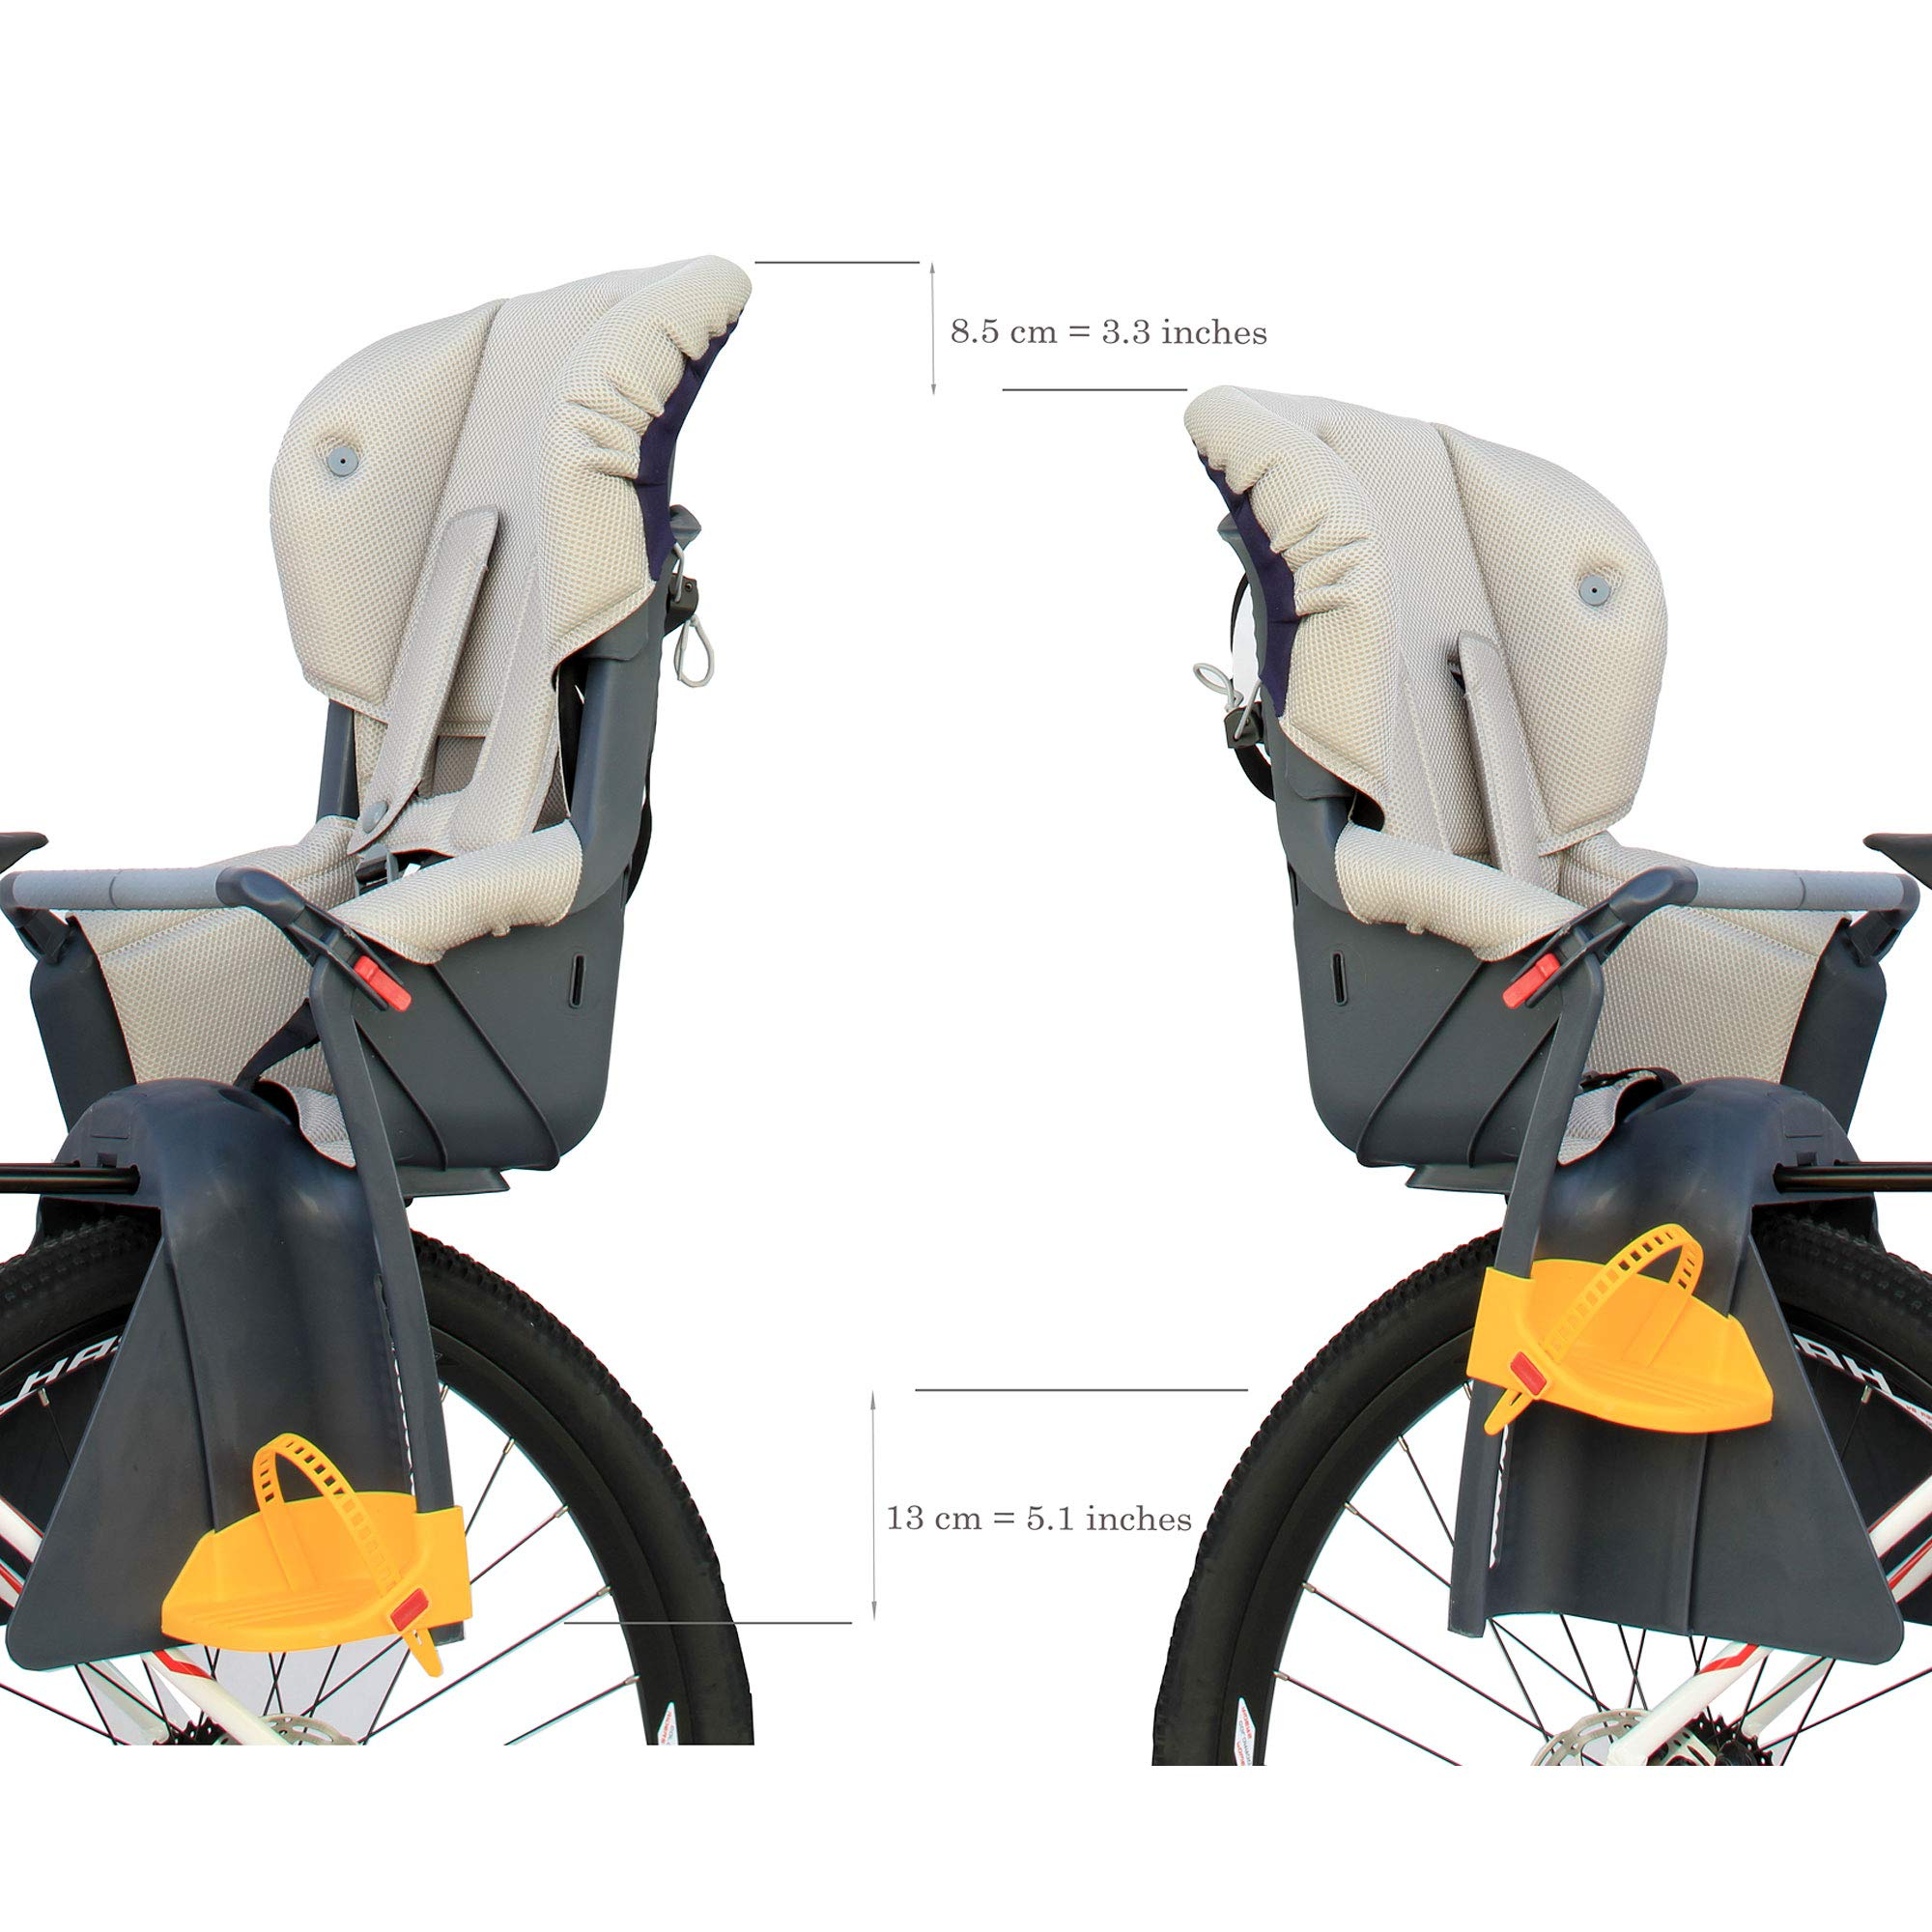 75586811f54 CyclingDeal Bicycle Kids Child Rear Baby Seat Bike Carrier USA Standard  with Adjustable Seat Rest Height - BQ-11   Child Seats   Sports   Outdoors  - tibs